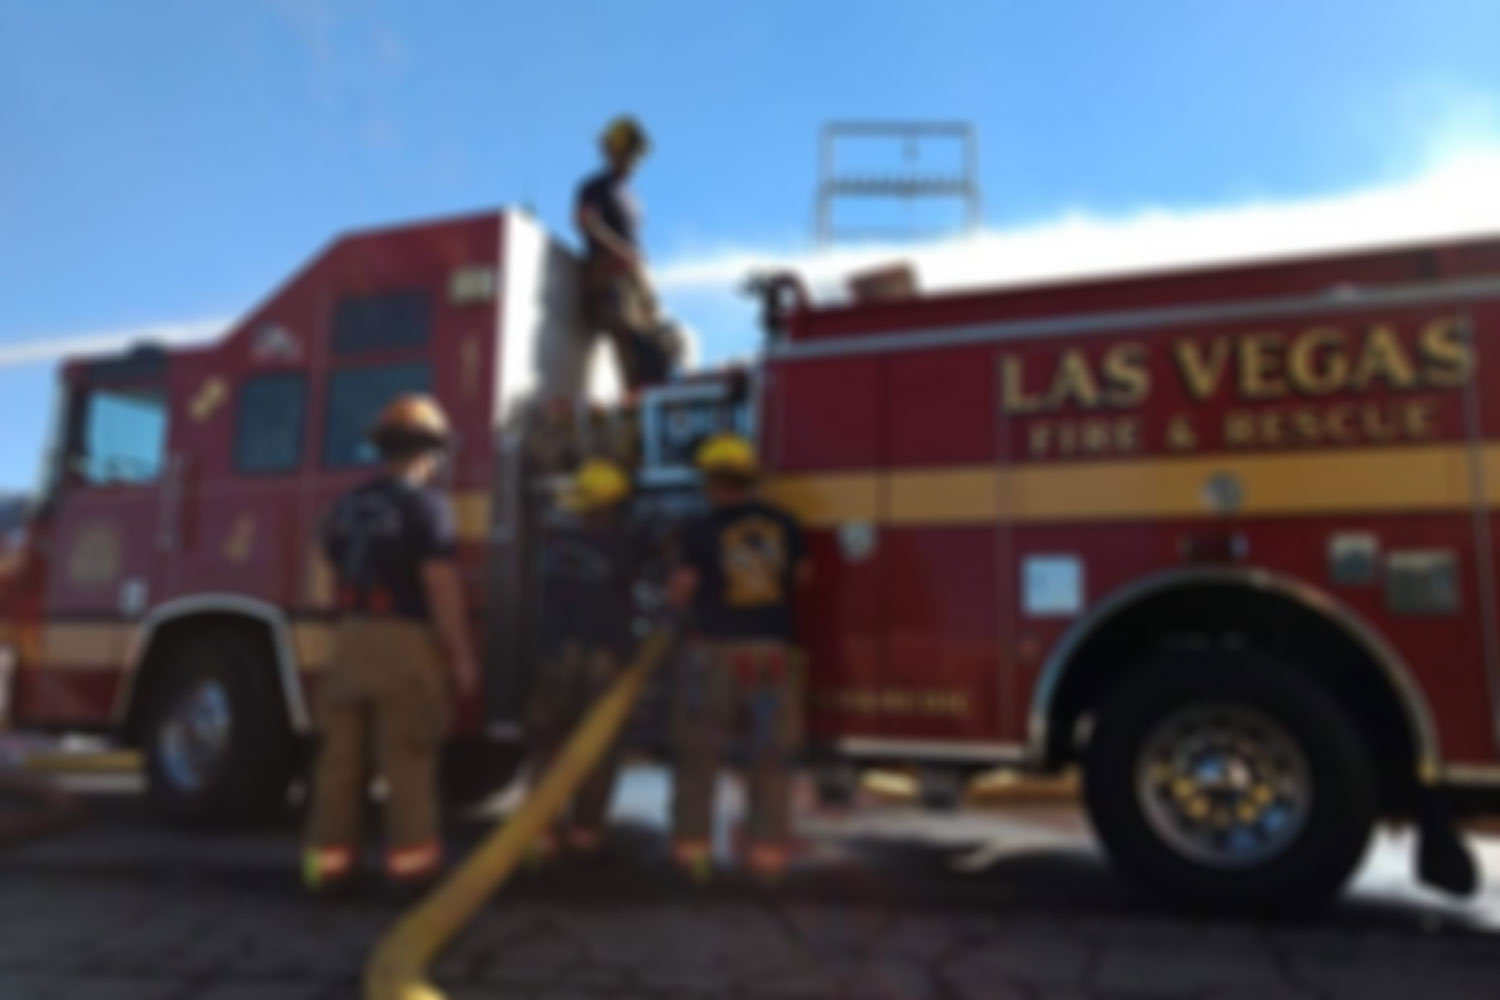 Las Vegas Fire truck with firemen working background for slider